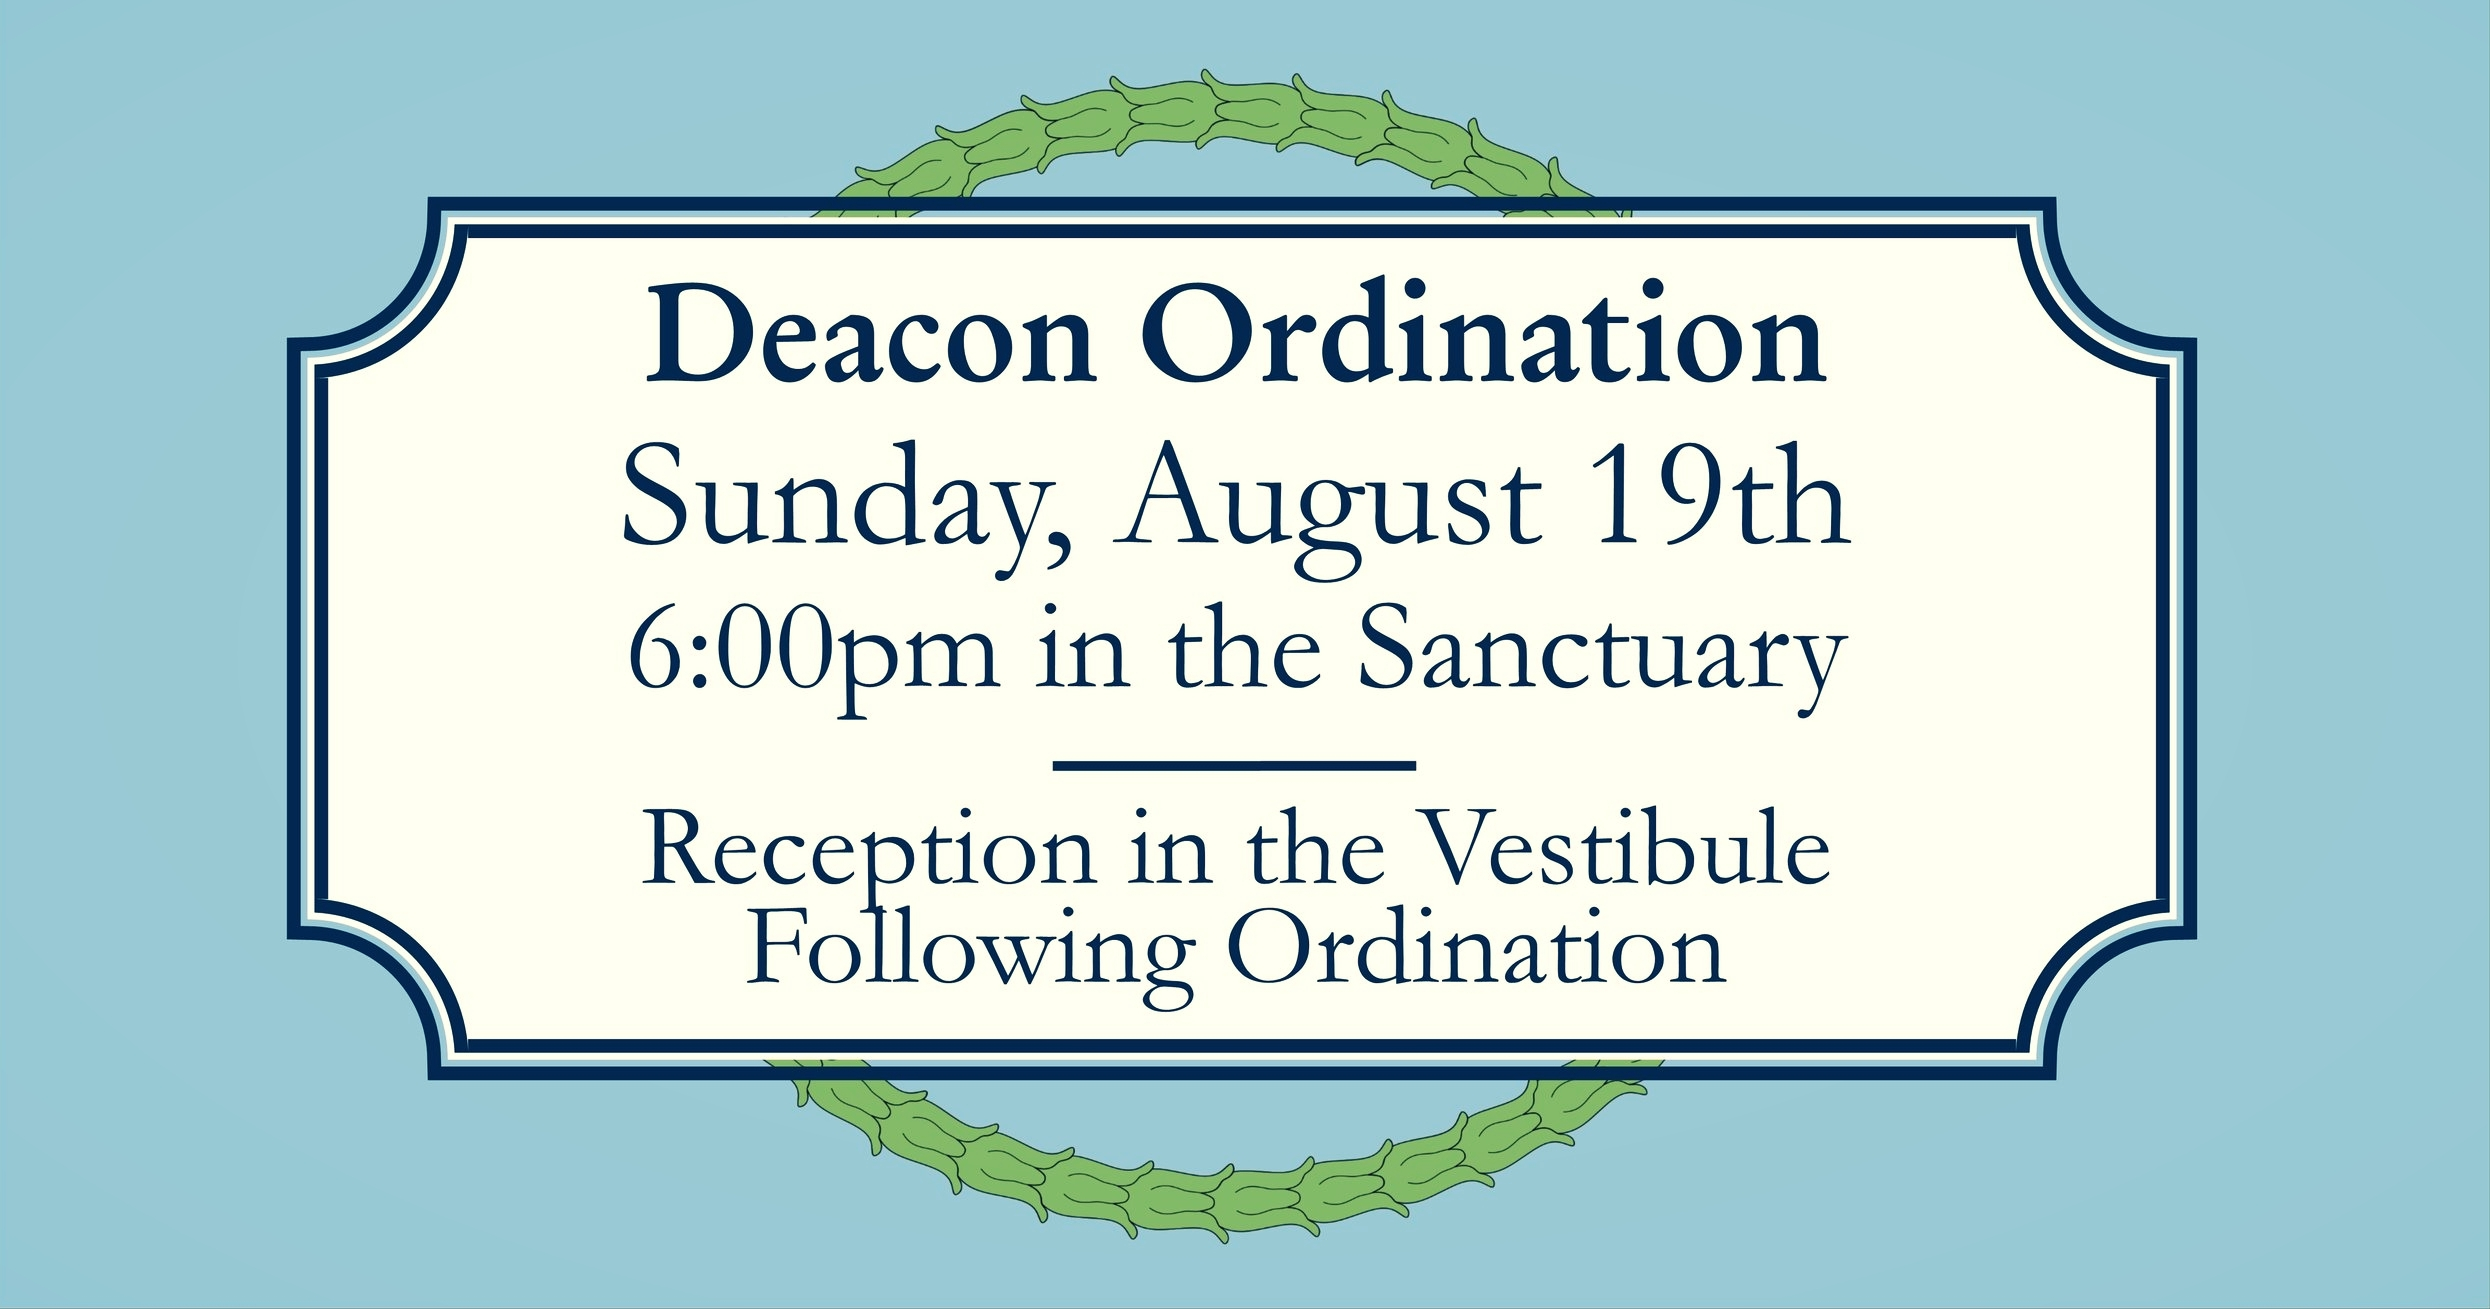 Deacon Ordination Facebook Link  073018.jpg